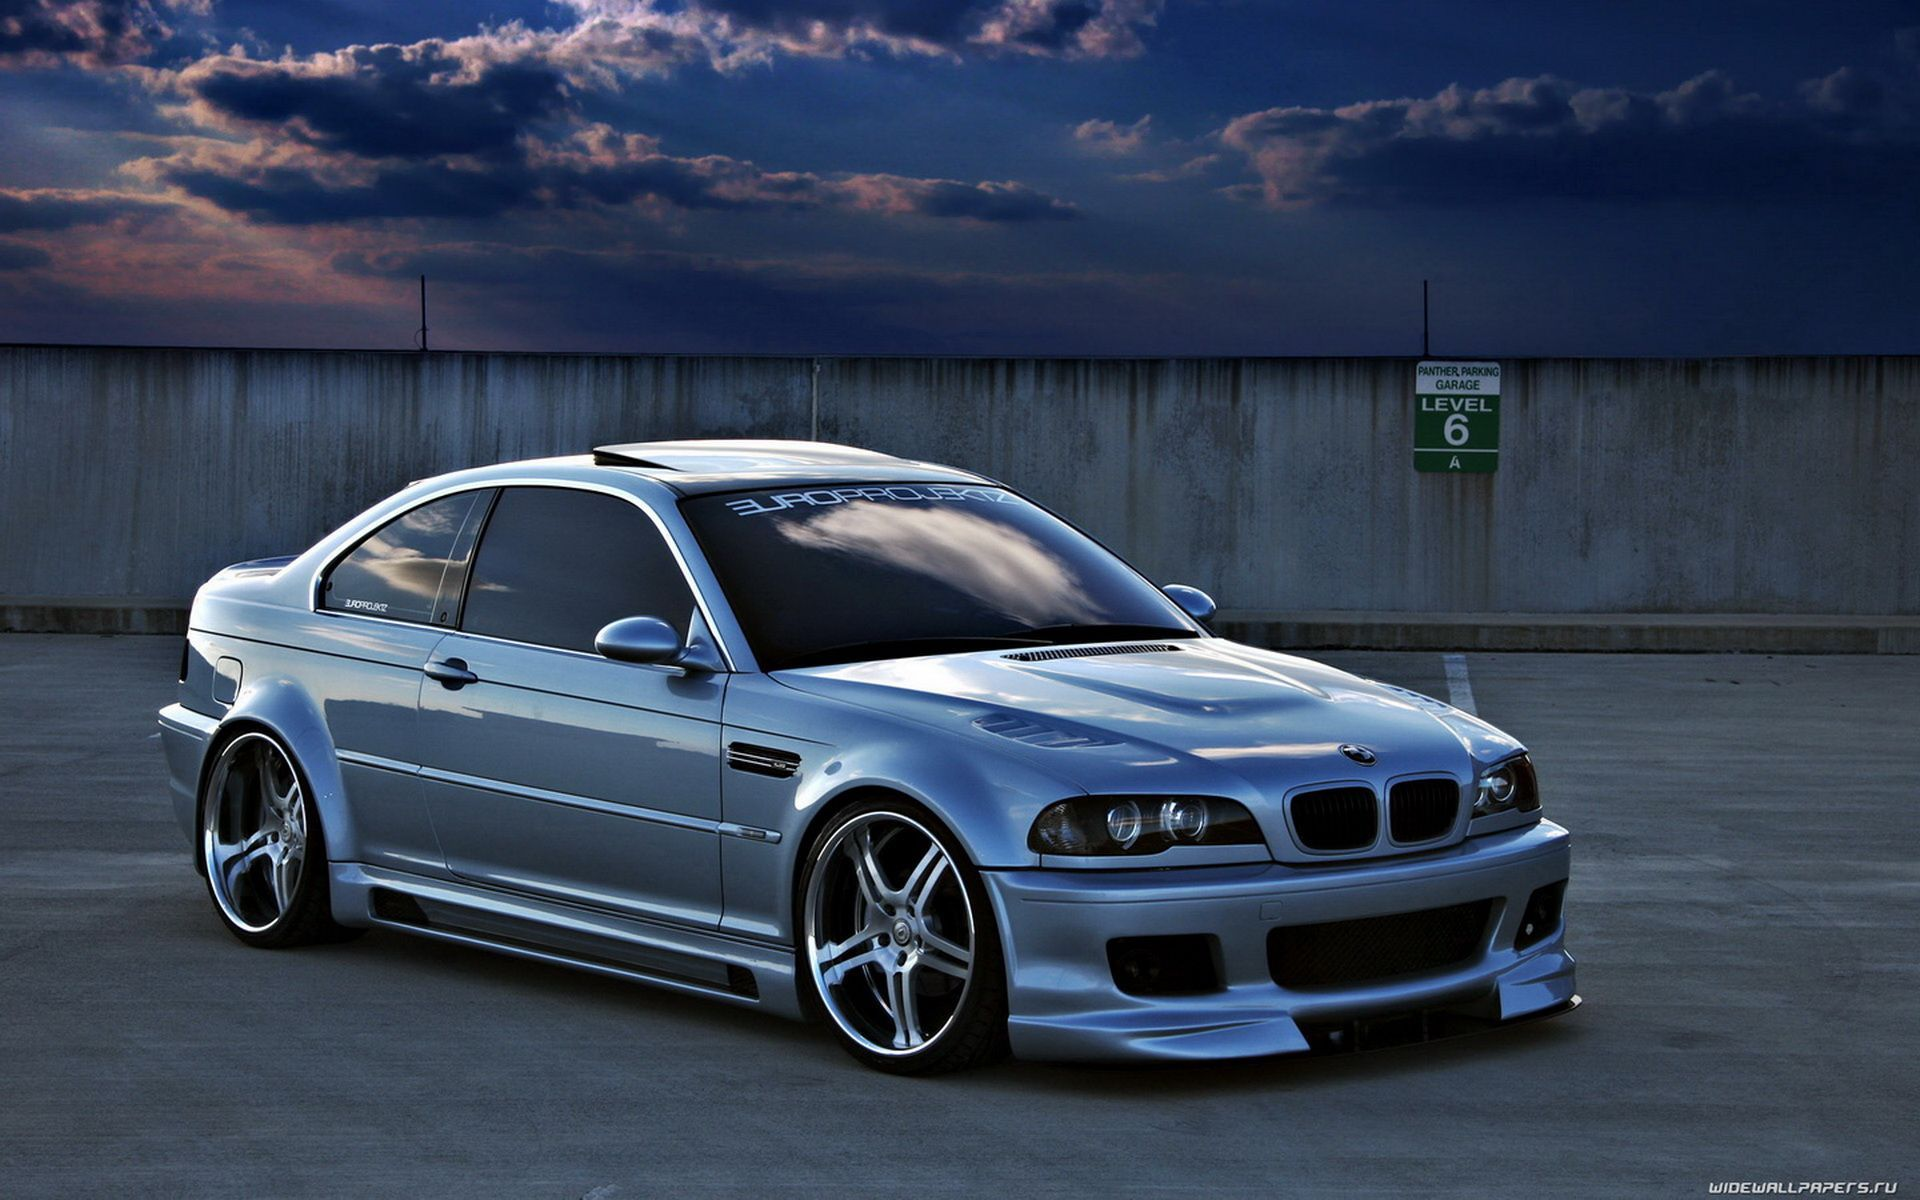 Bmw m3 e46 check out these bimmers http